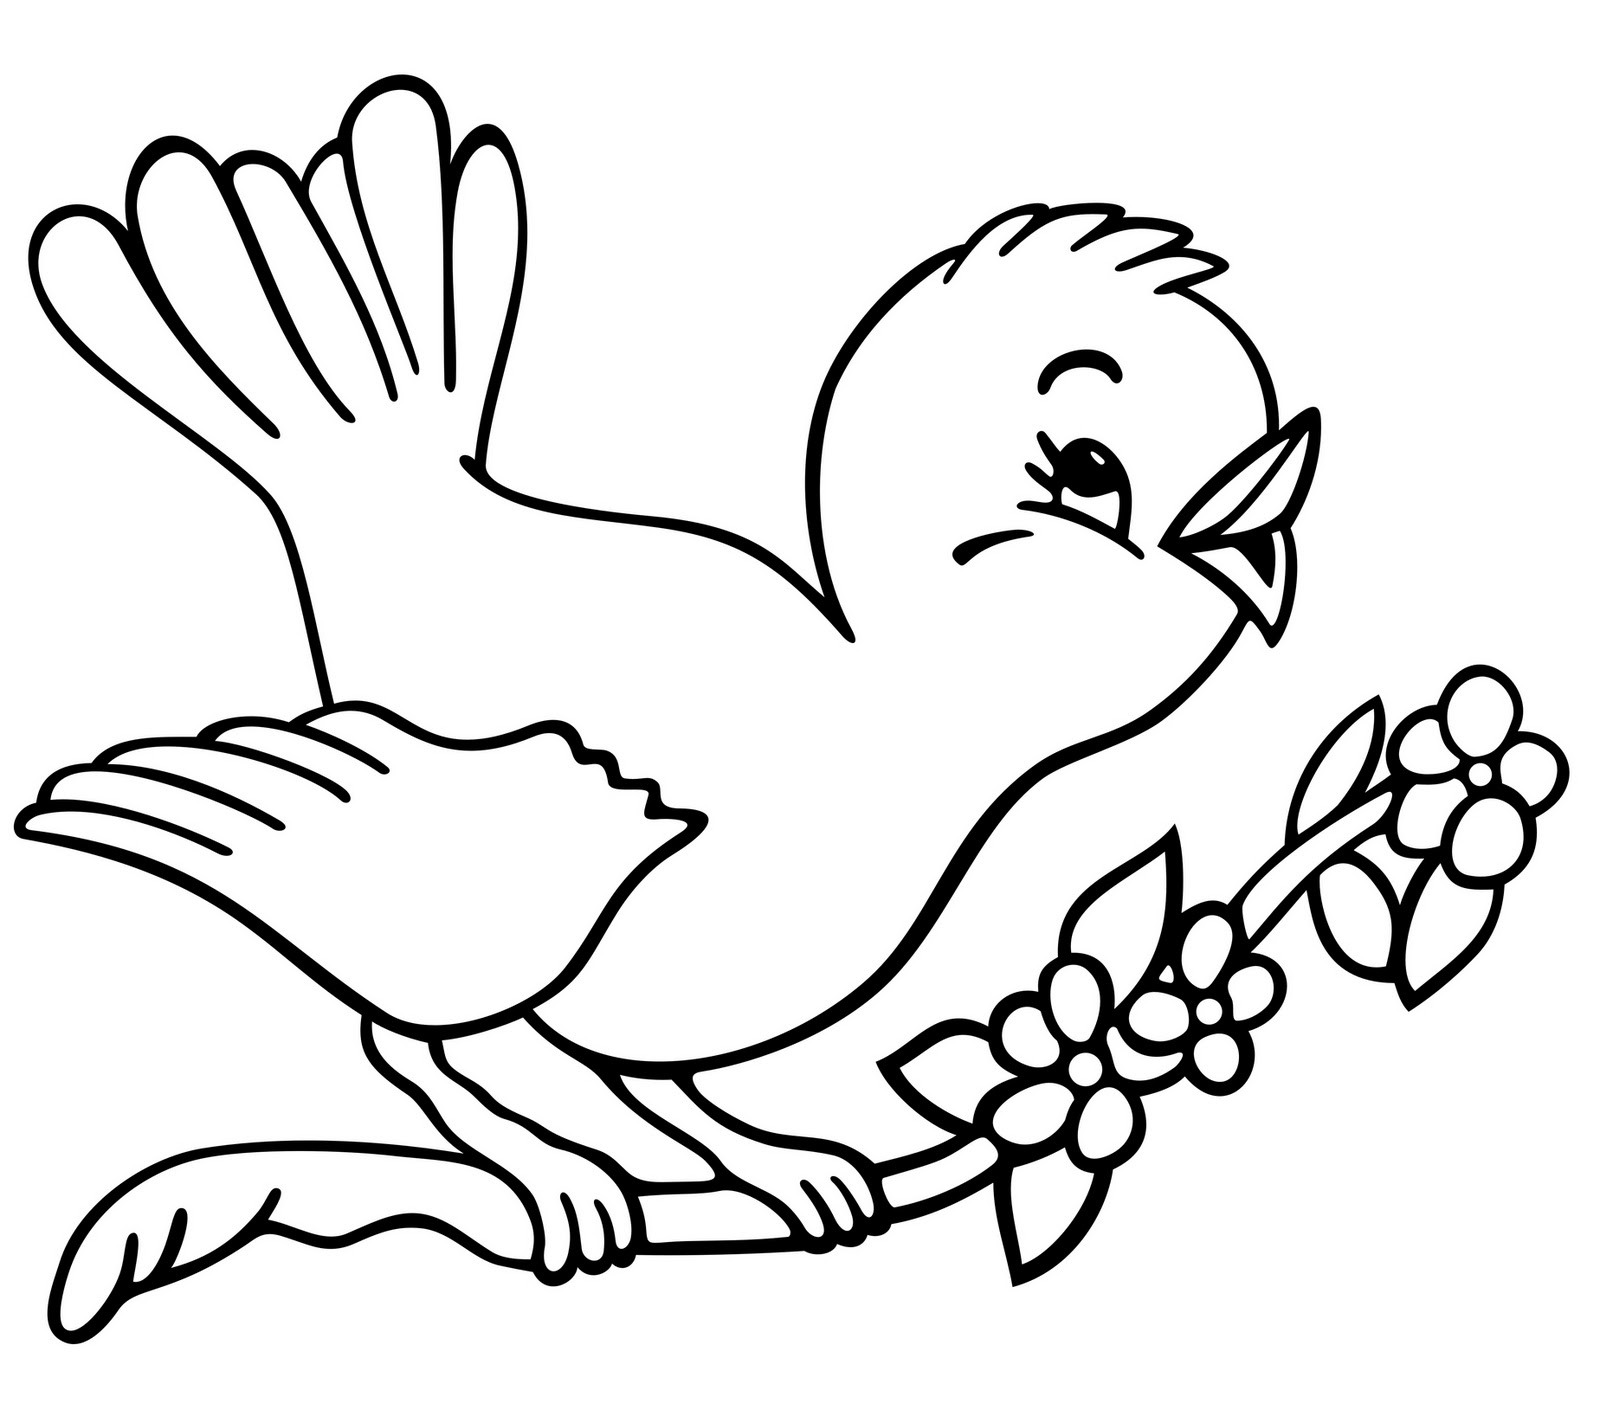 simple bird free animal coloring sheet for kids